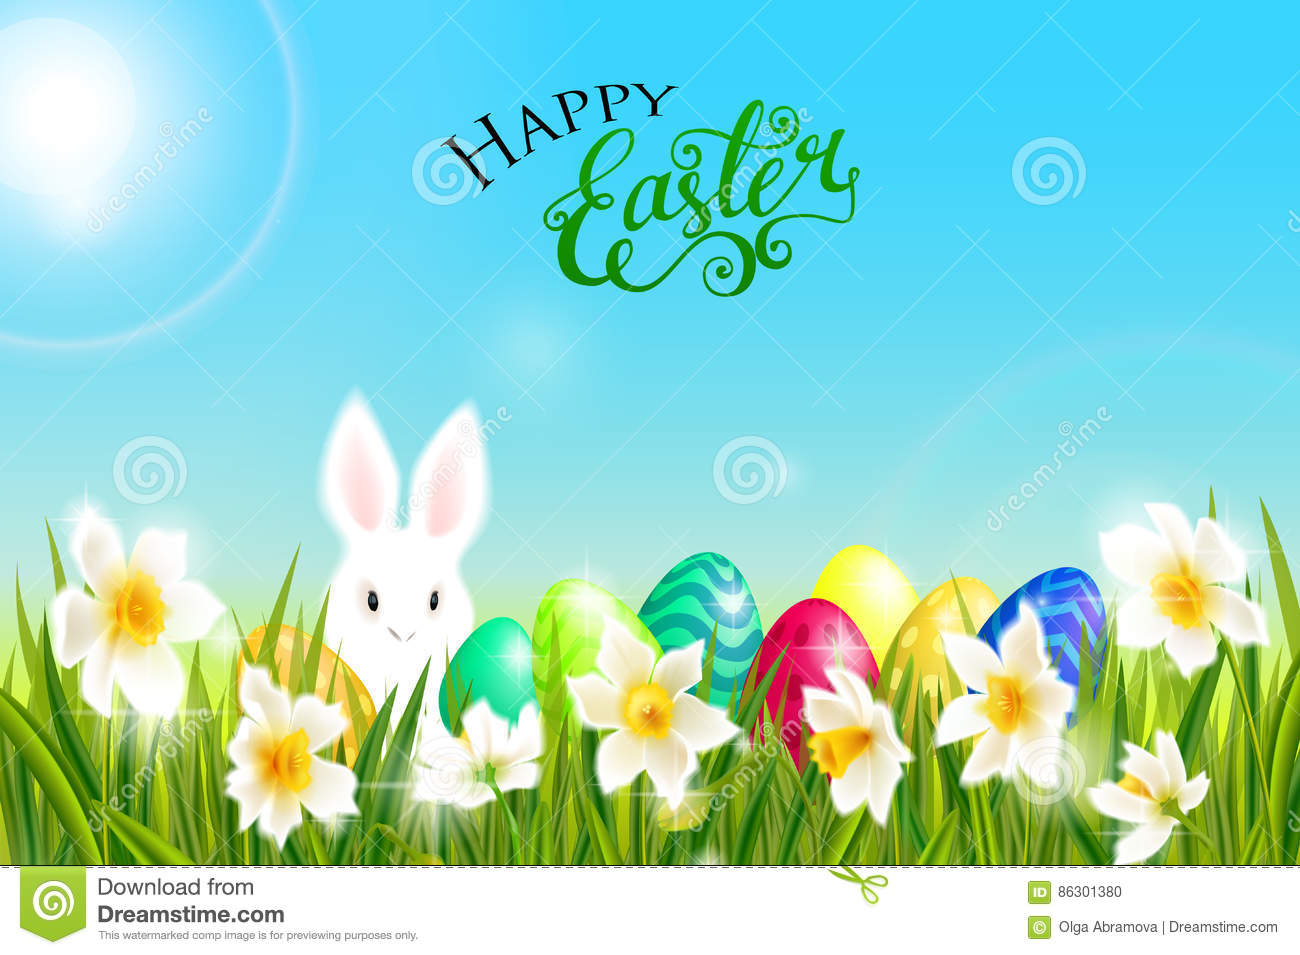 Happy easter card with eggs rabbit spring flowers green grass and happy easter card with eggs rabbit spring flowers daffodil narcissus green grass and blue sky lettering calligraphy vector illustration eps10 mightylinksfo